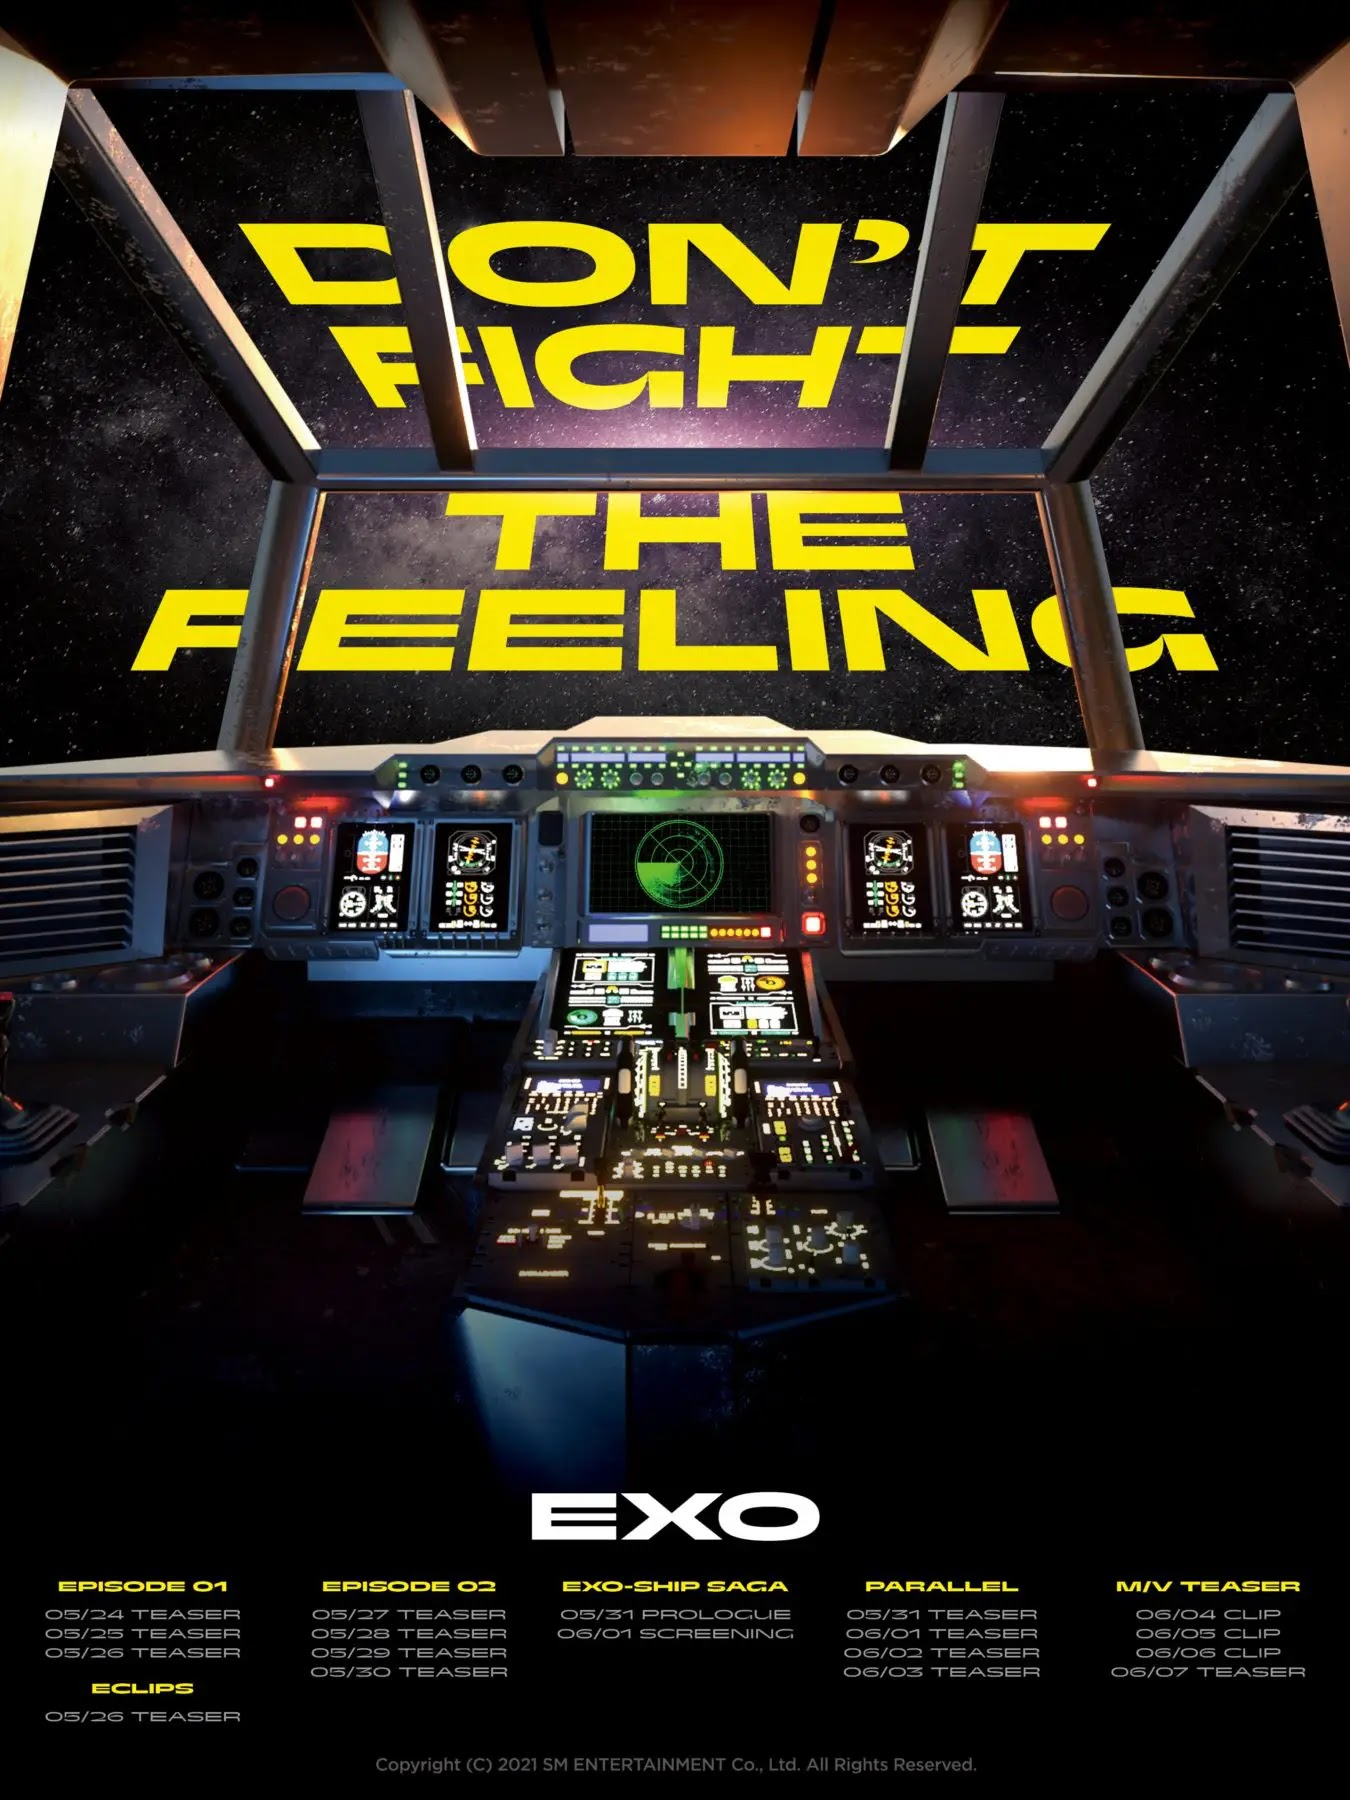 EXO Finally Announces Comeback Schedule With 'DON'T FIGHT THE FEELING'